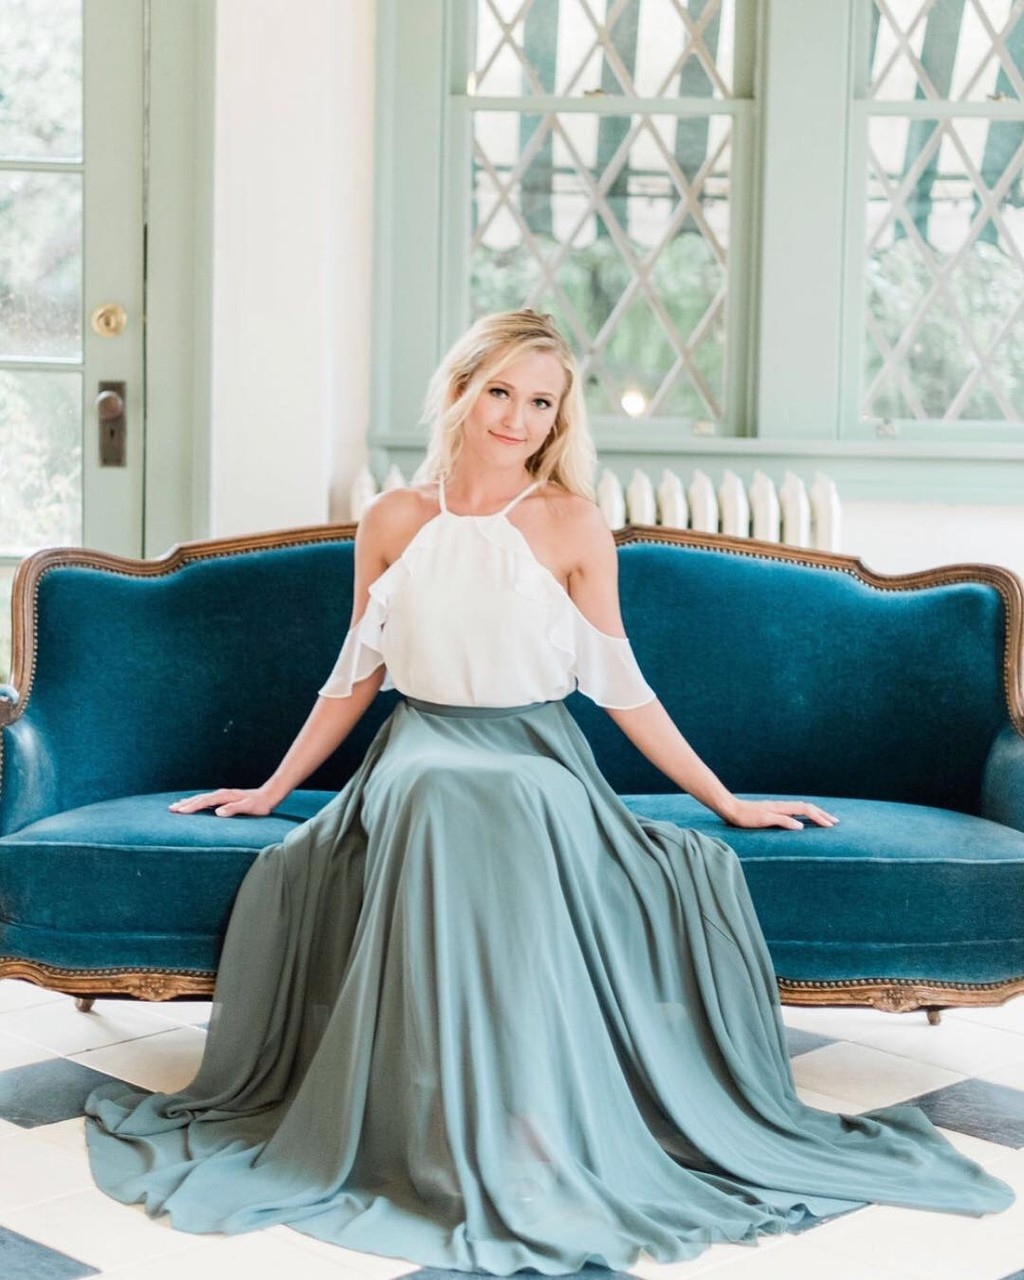 Serene moments, soft lighting, & seriously swoon-worthy separates.💙